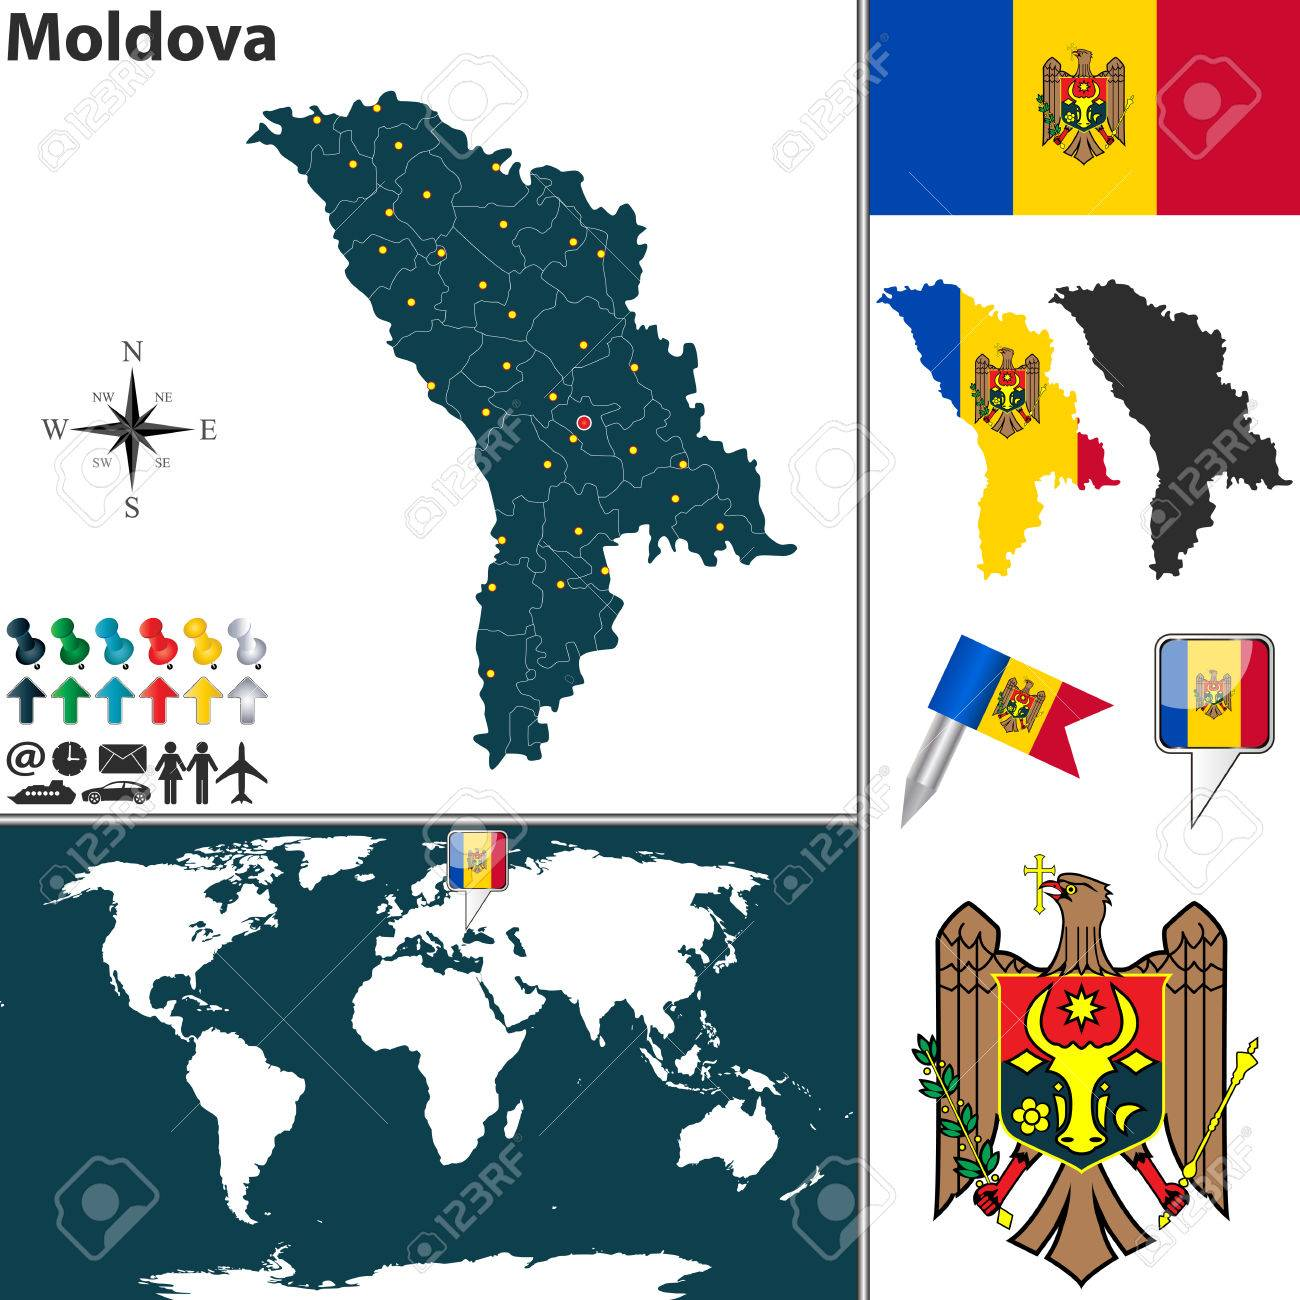 Map Of Moldova With Regions Coat Of Arms And Location On World